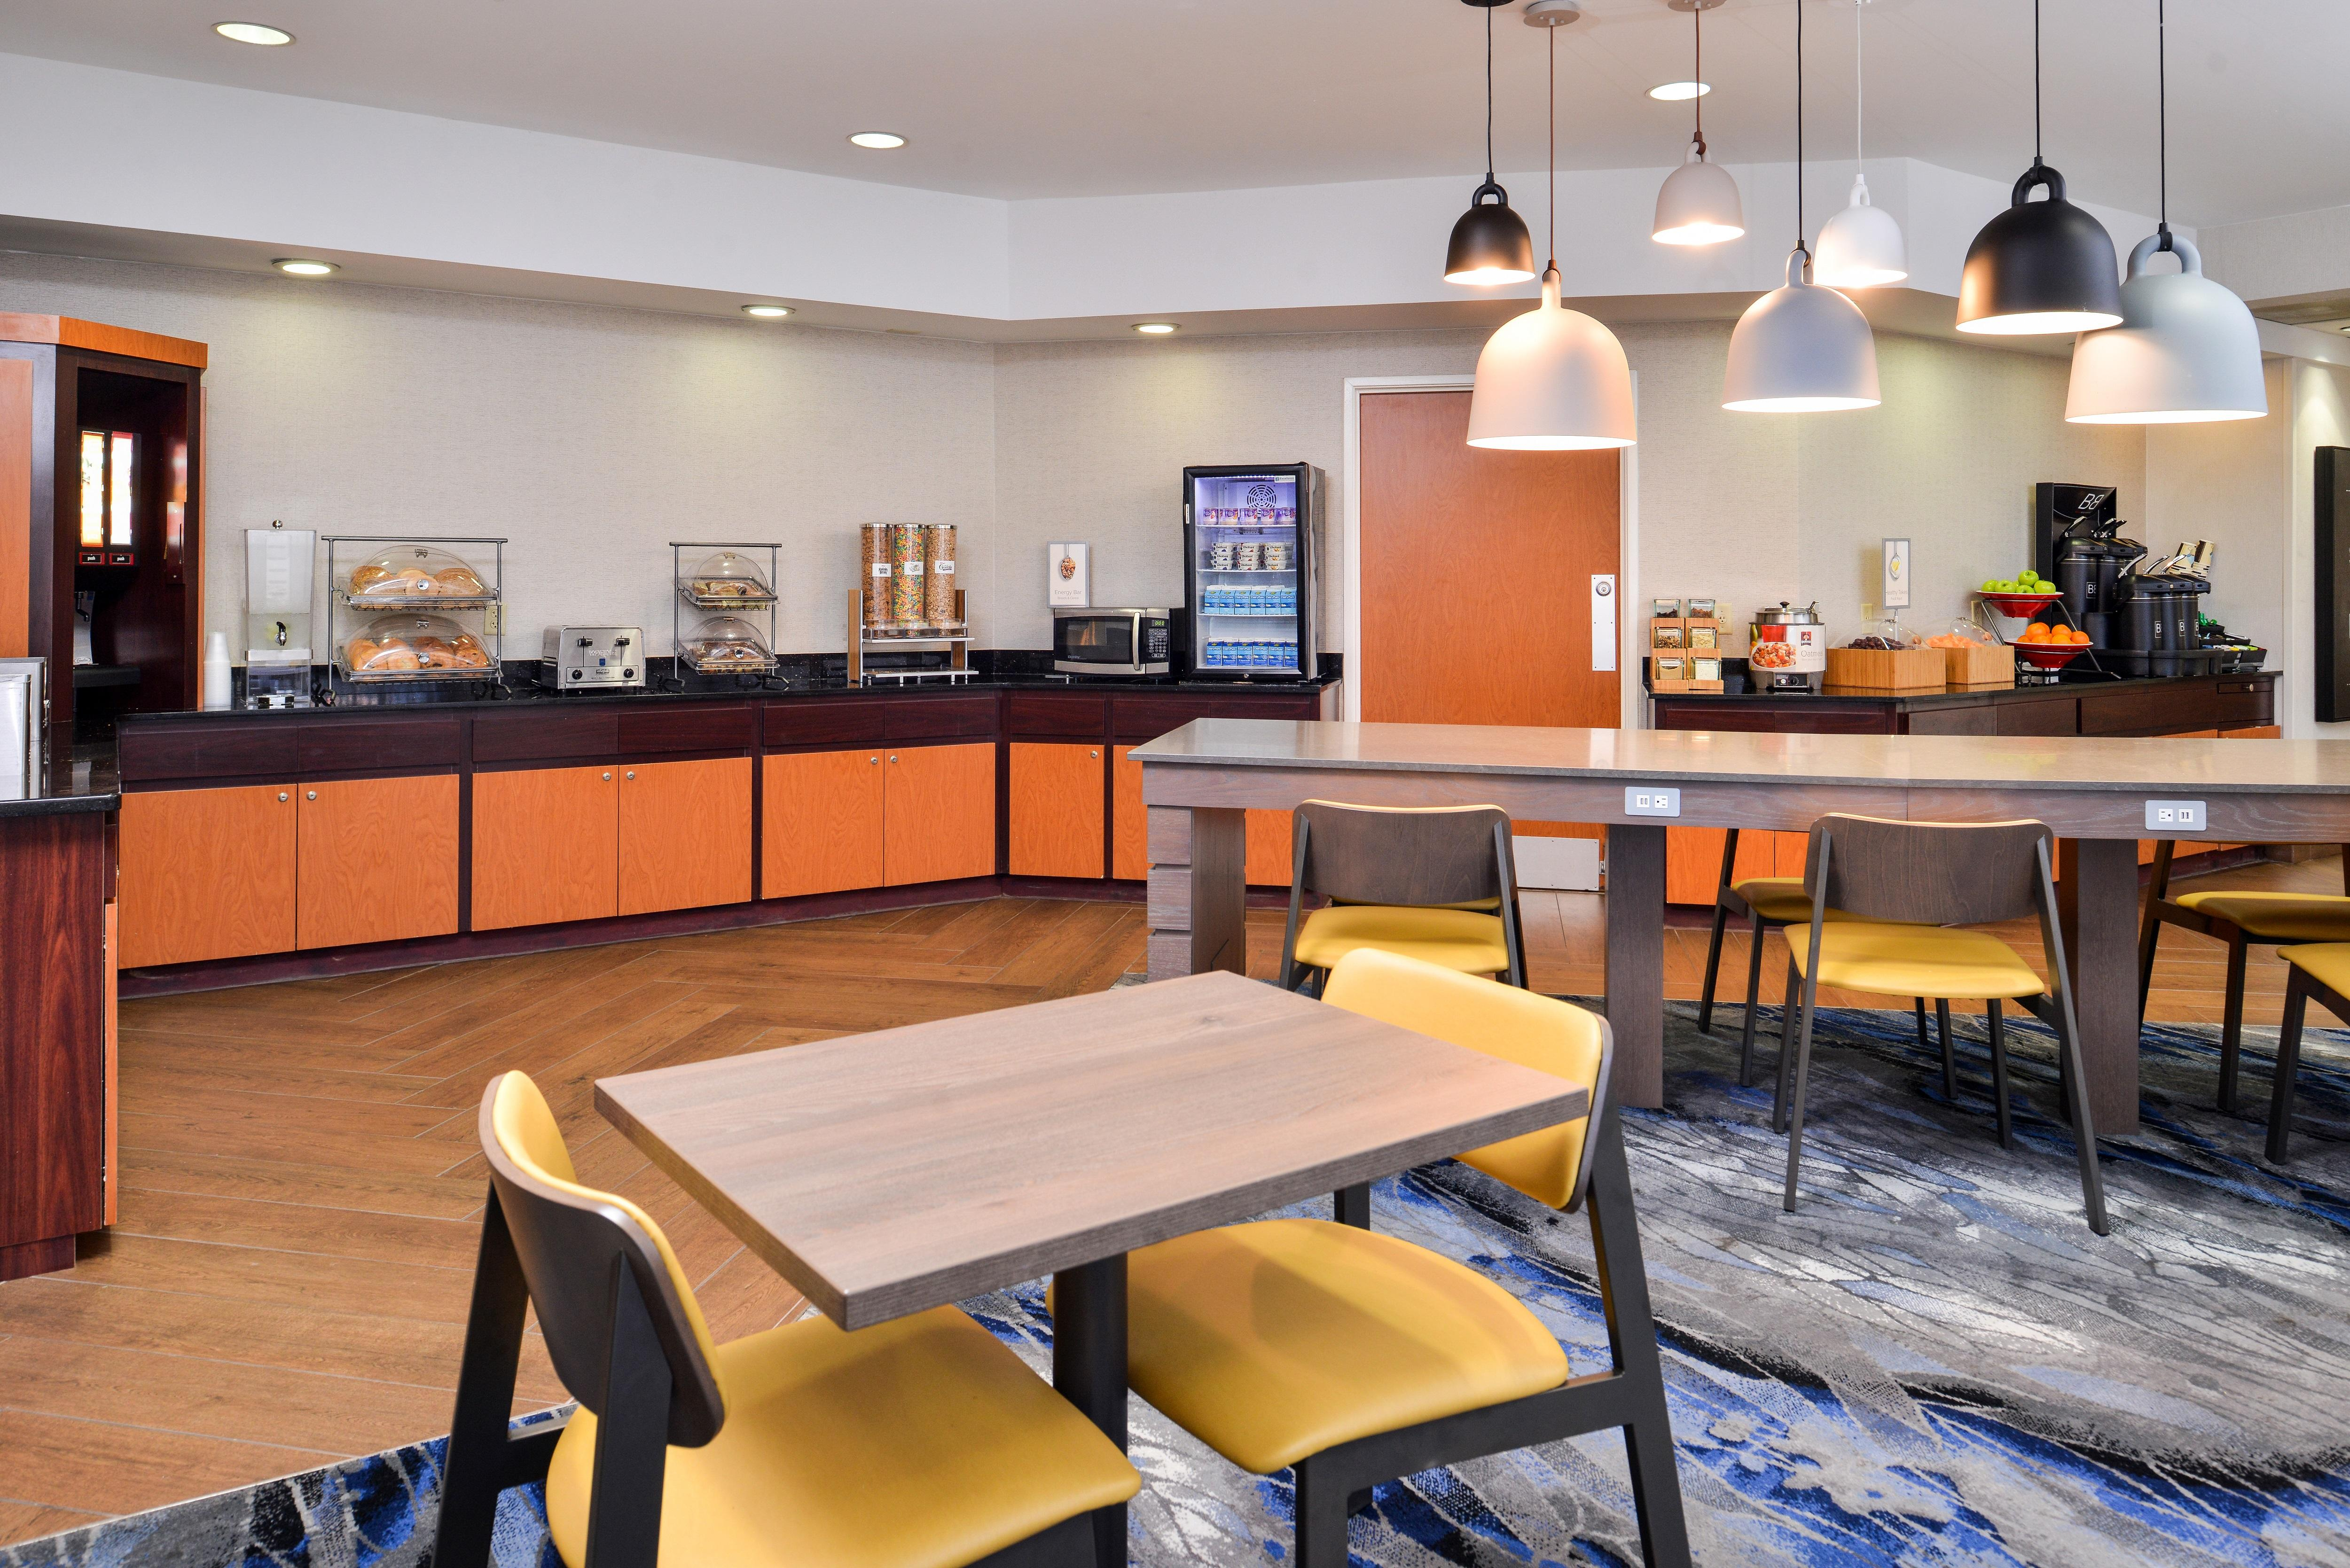 Fairfield Inn & Suites by Marriott Ocala image 3